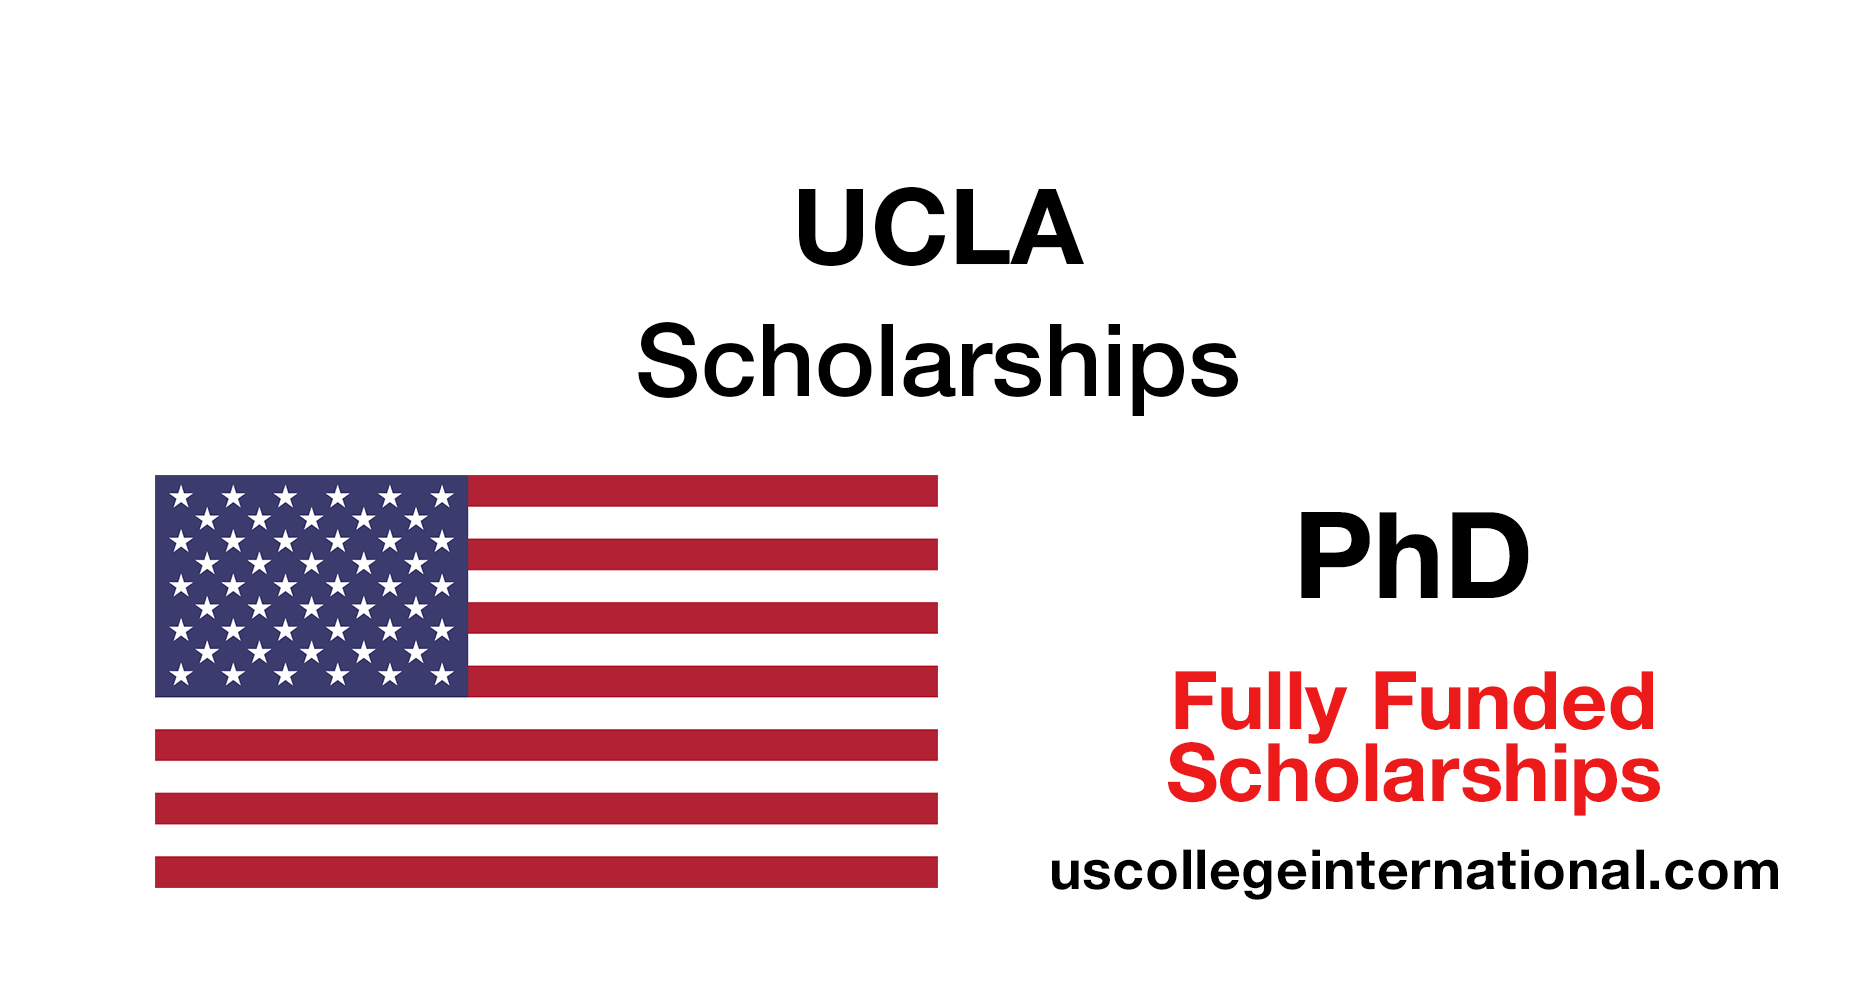 UCLA Scholarships